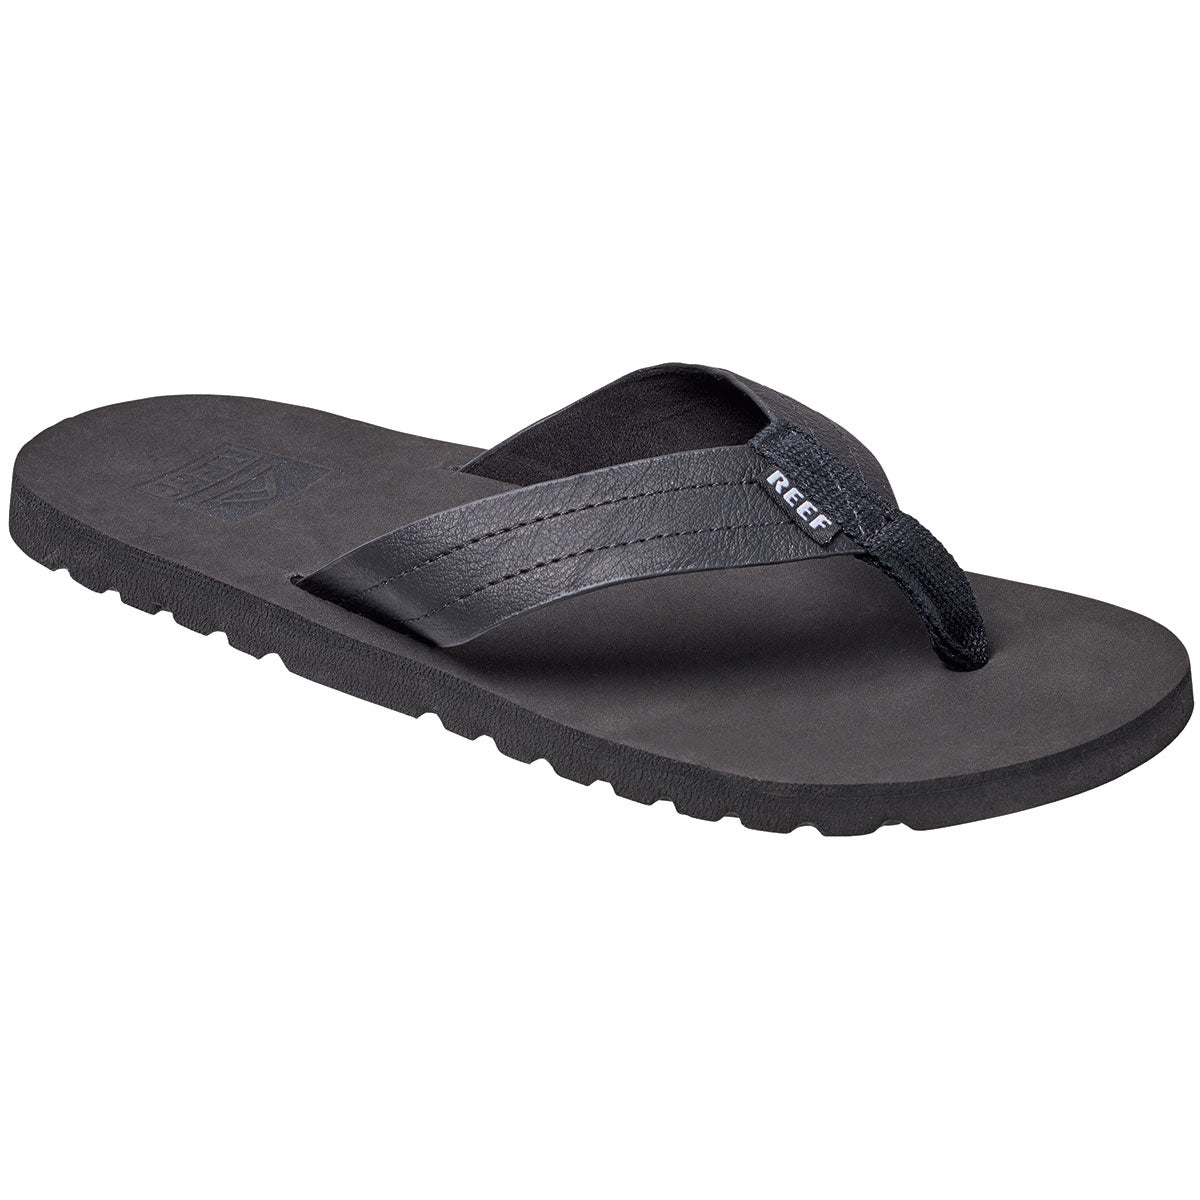 Reef Voyage Men's Sandal Footwear (USED LIKE NEW / LAST CALL SALE)